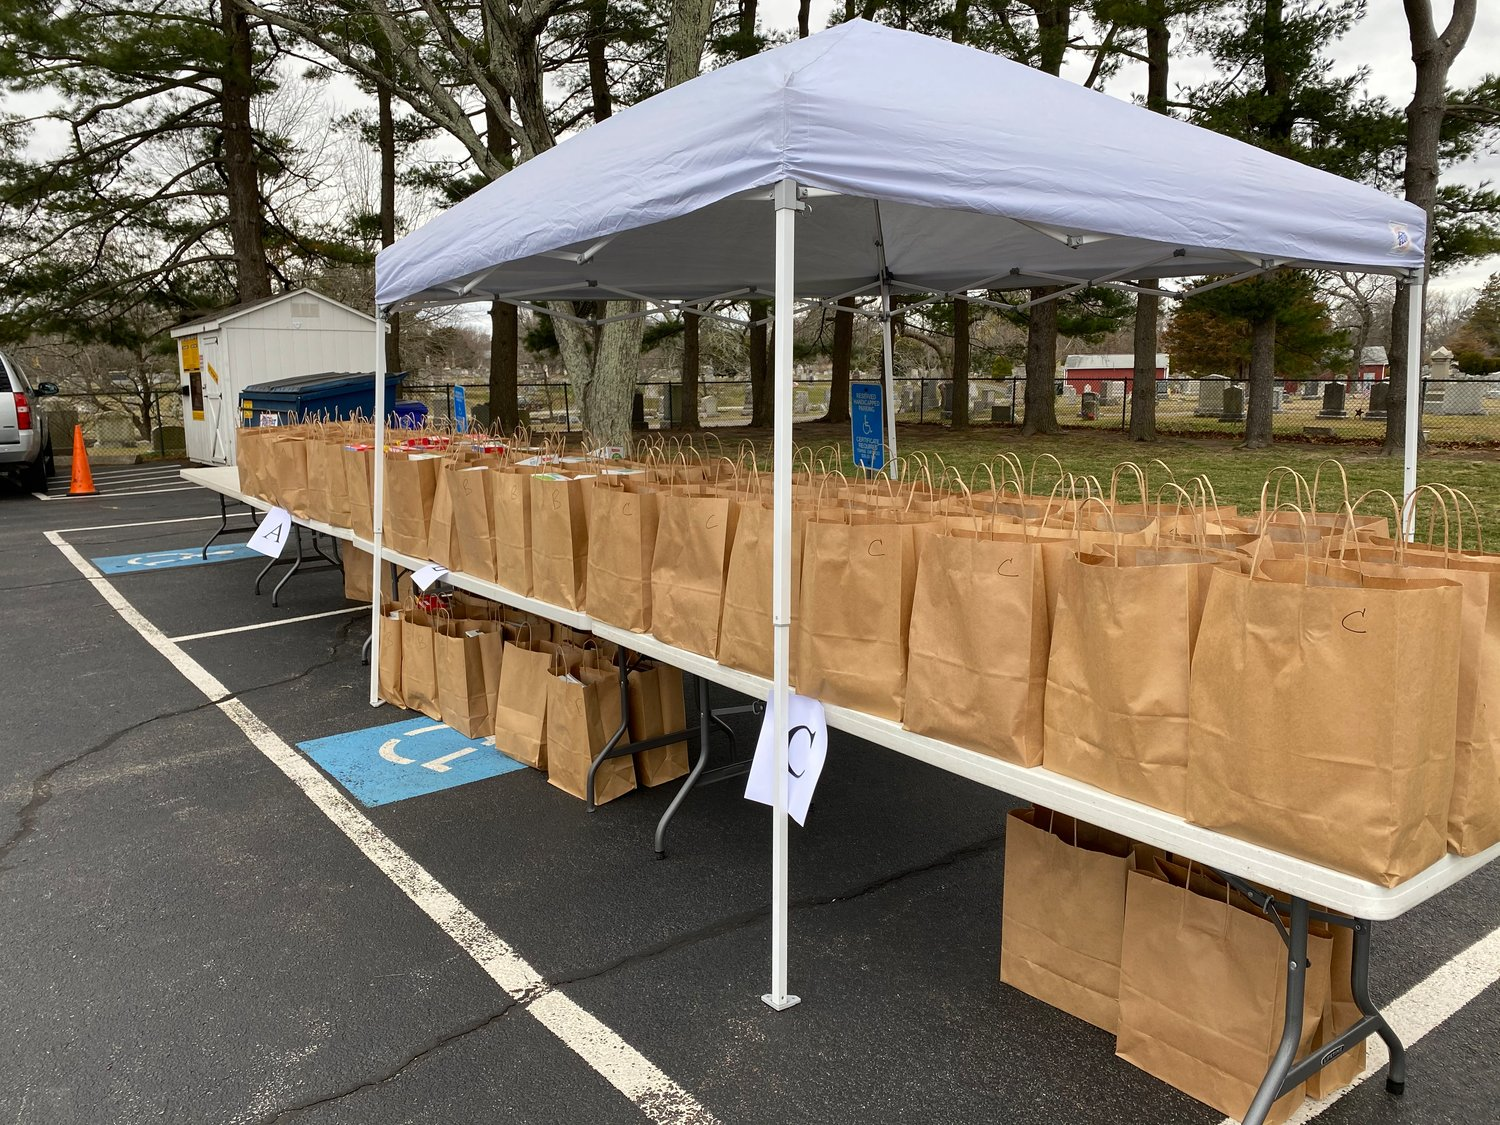 Bread of Life Food Pantry Responds to Community Needs